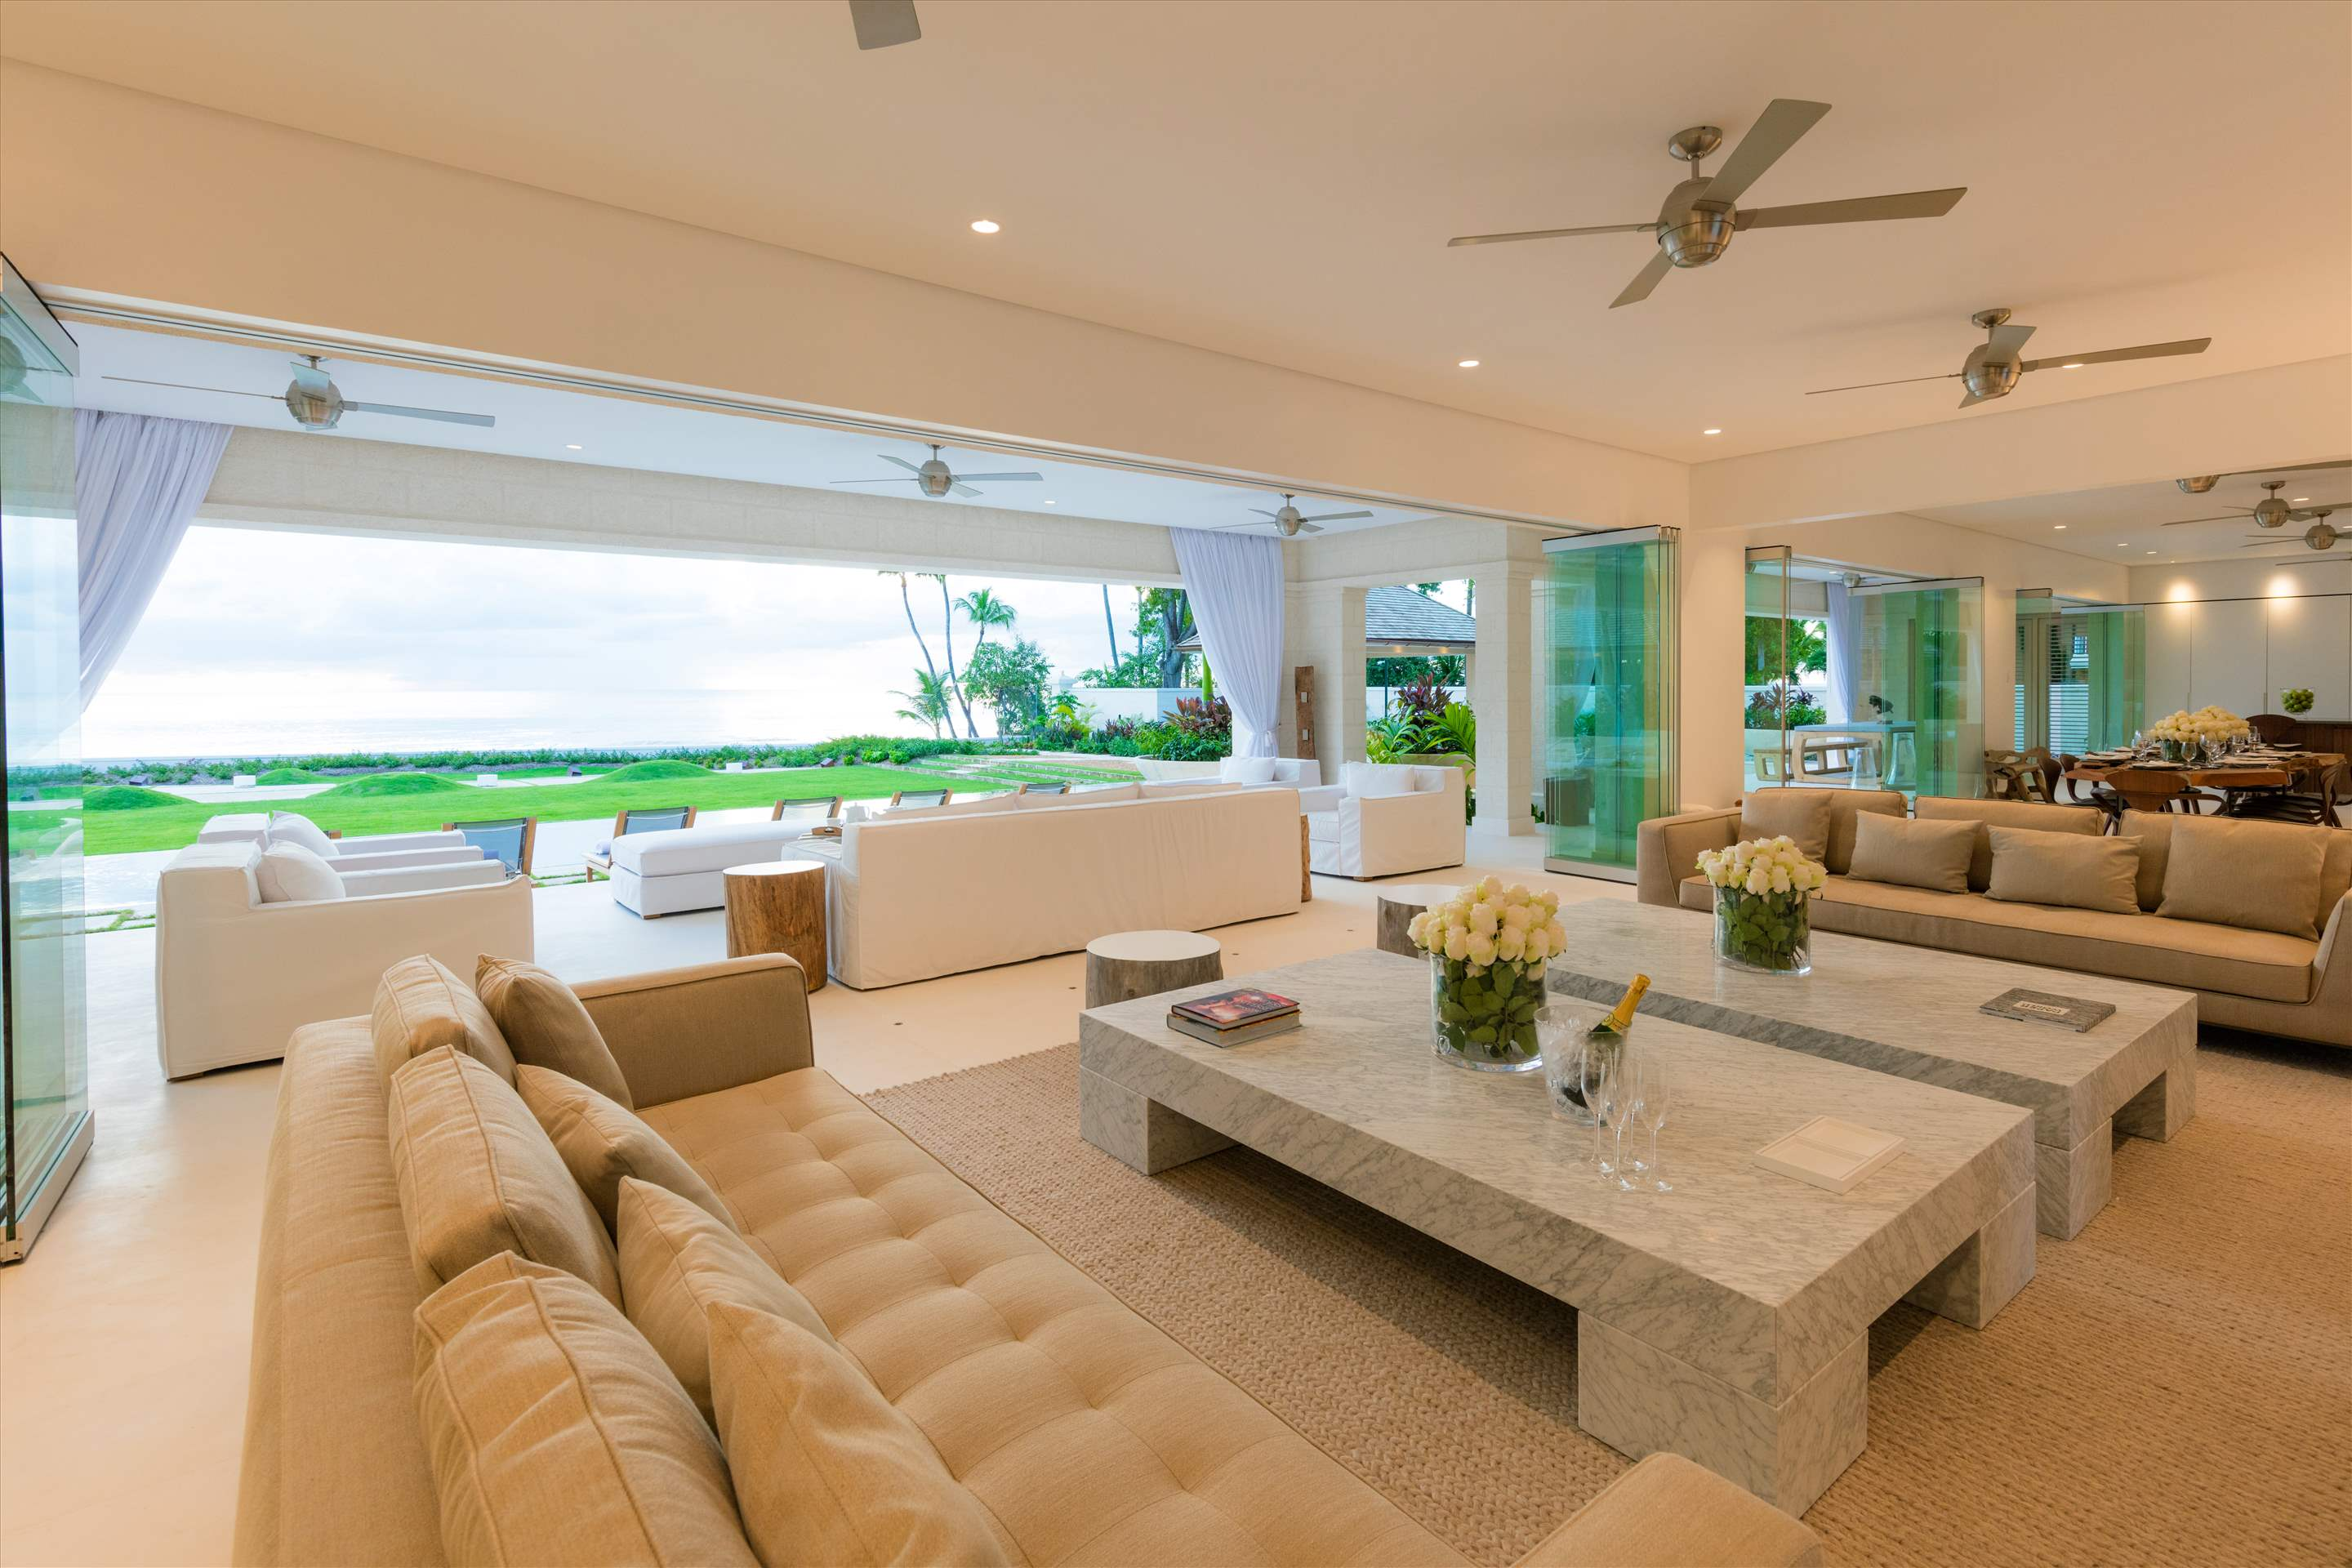 Godings Beach House, 5 bedroom villa in St. James & West Coast, Barbados Photo #3